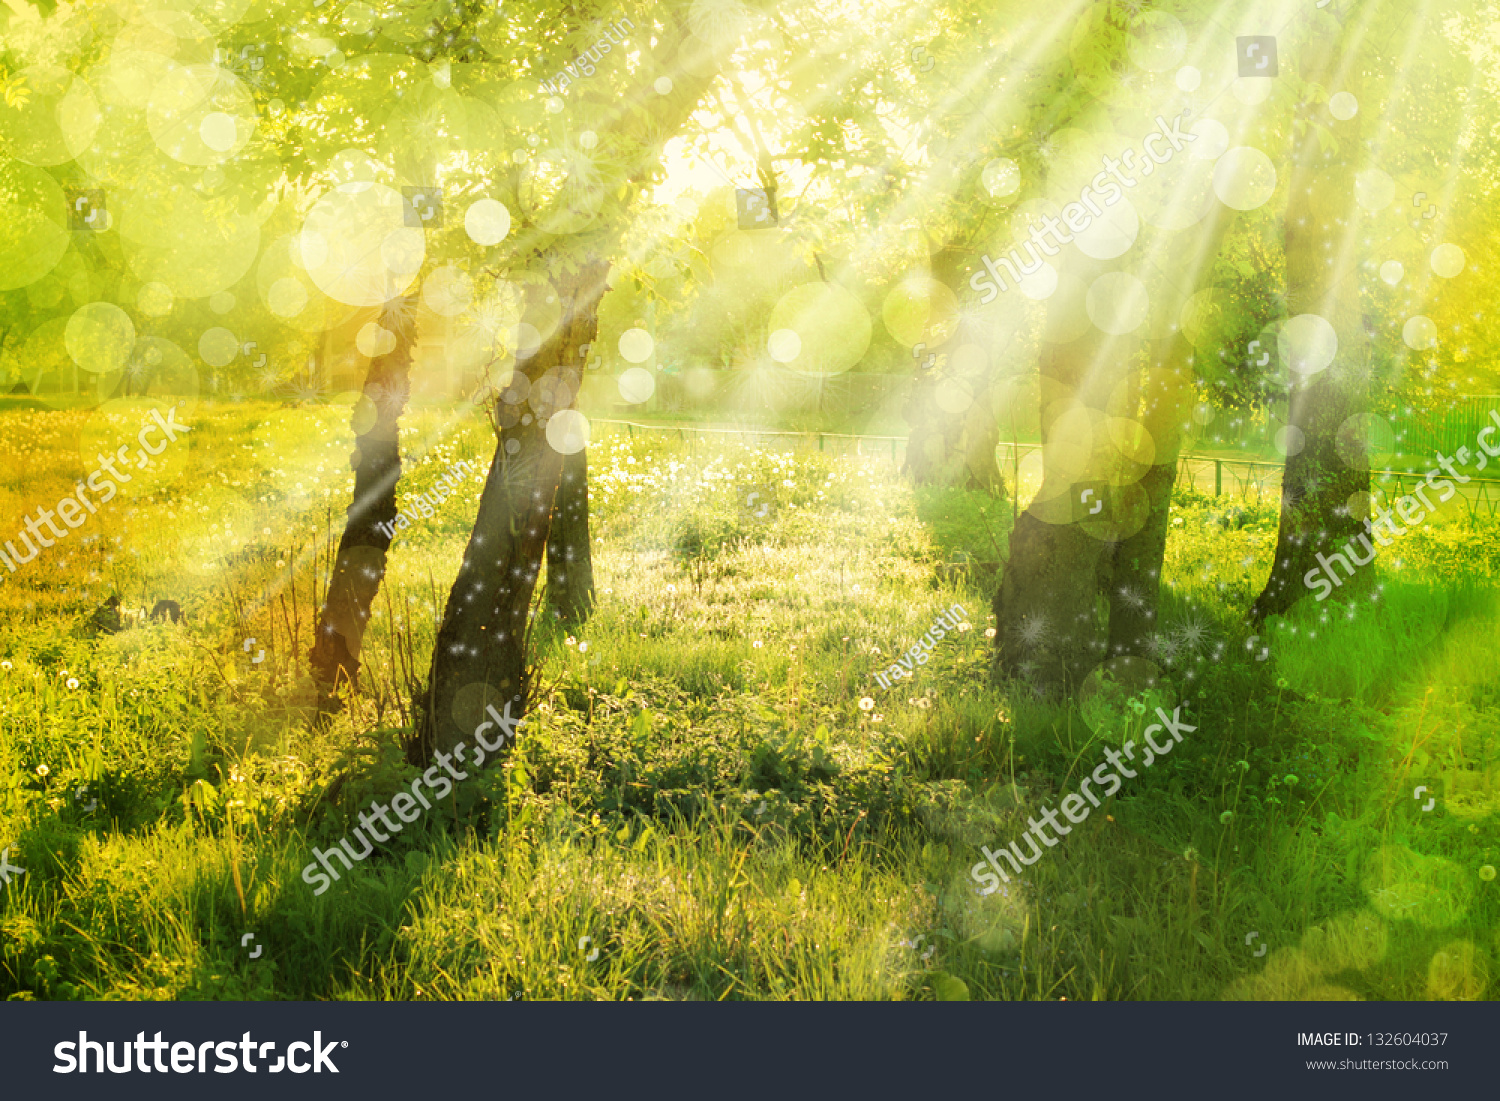 Nature Sunshine Galaxy S4 Wallpapers: Spring Nature Background With Sun Beam / Green Landscape